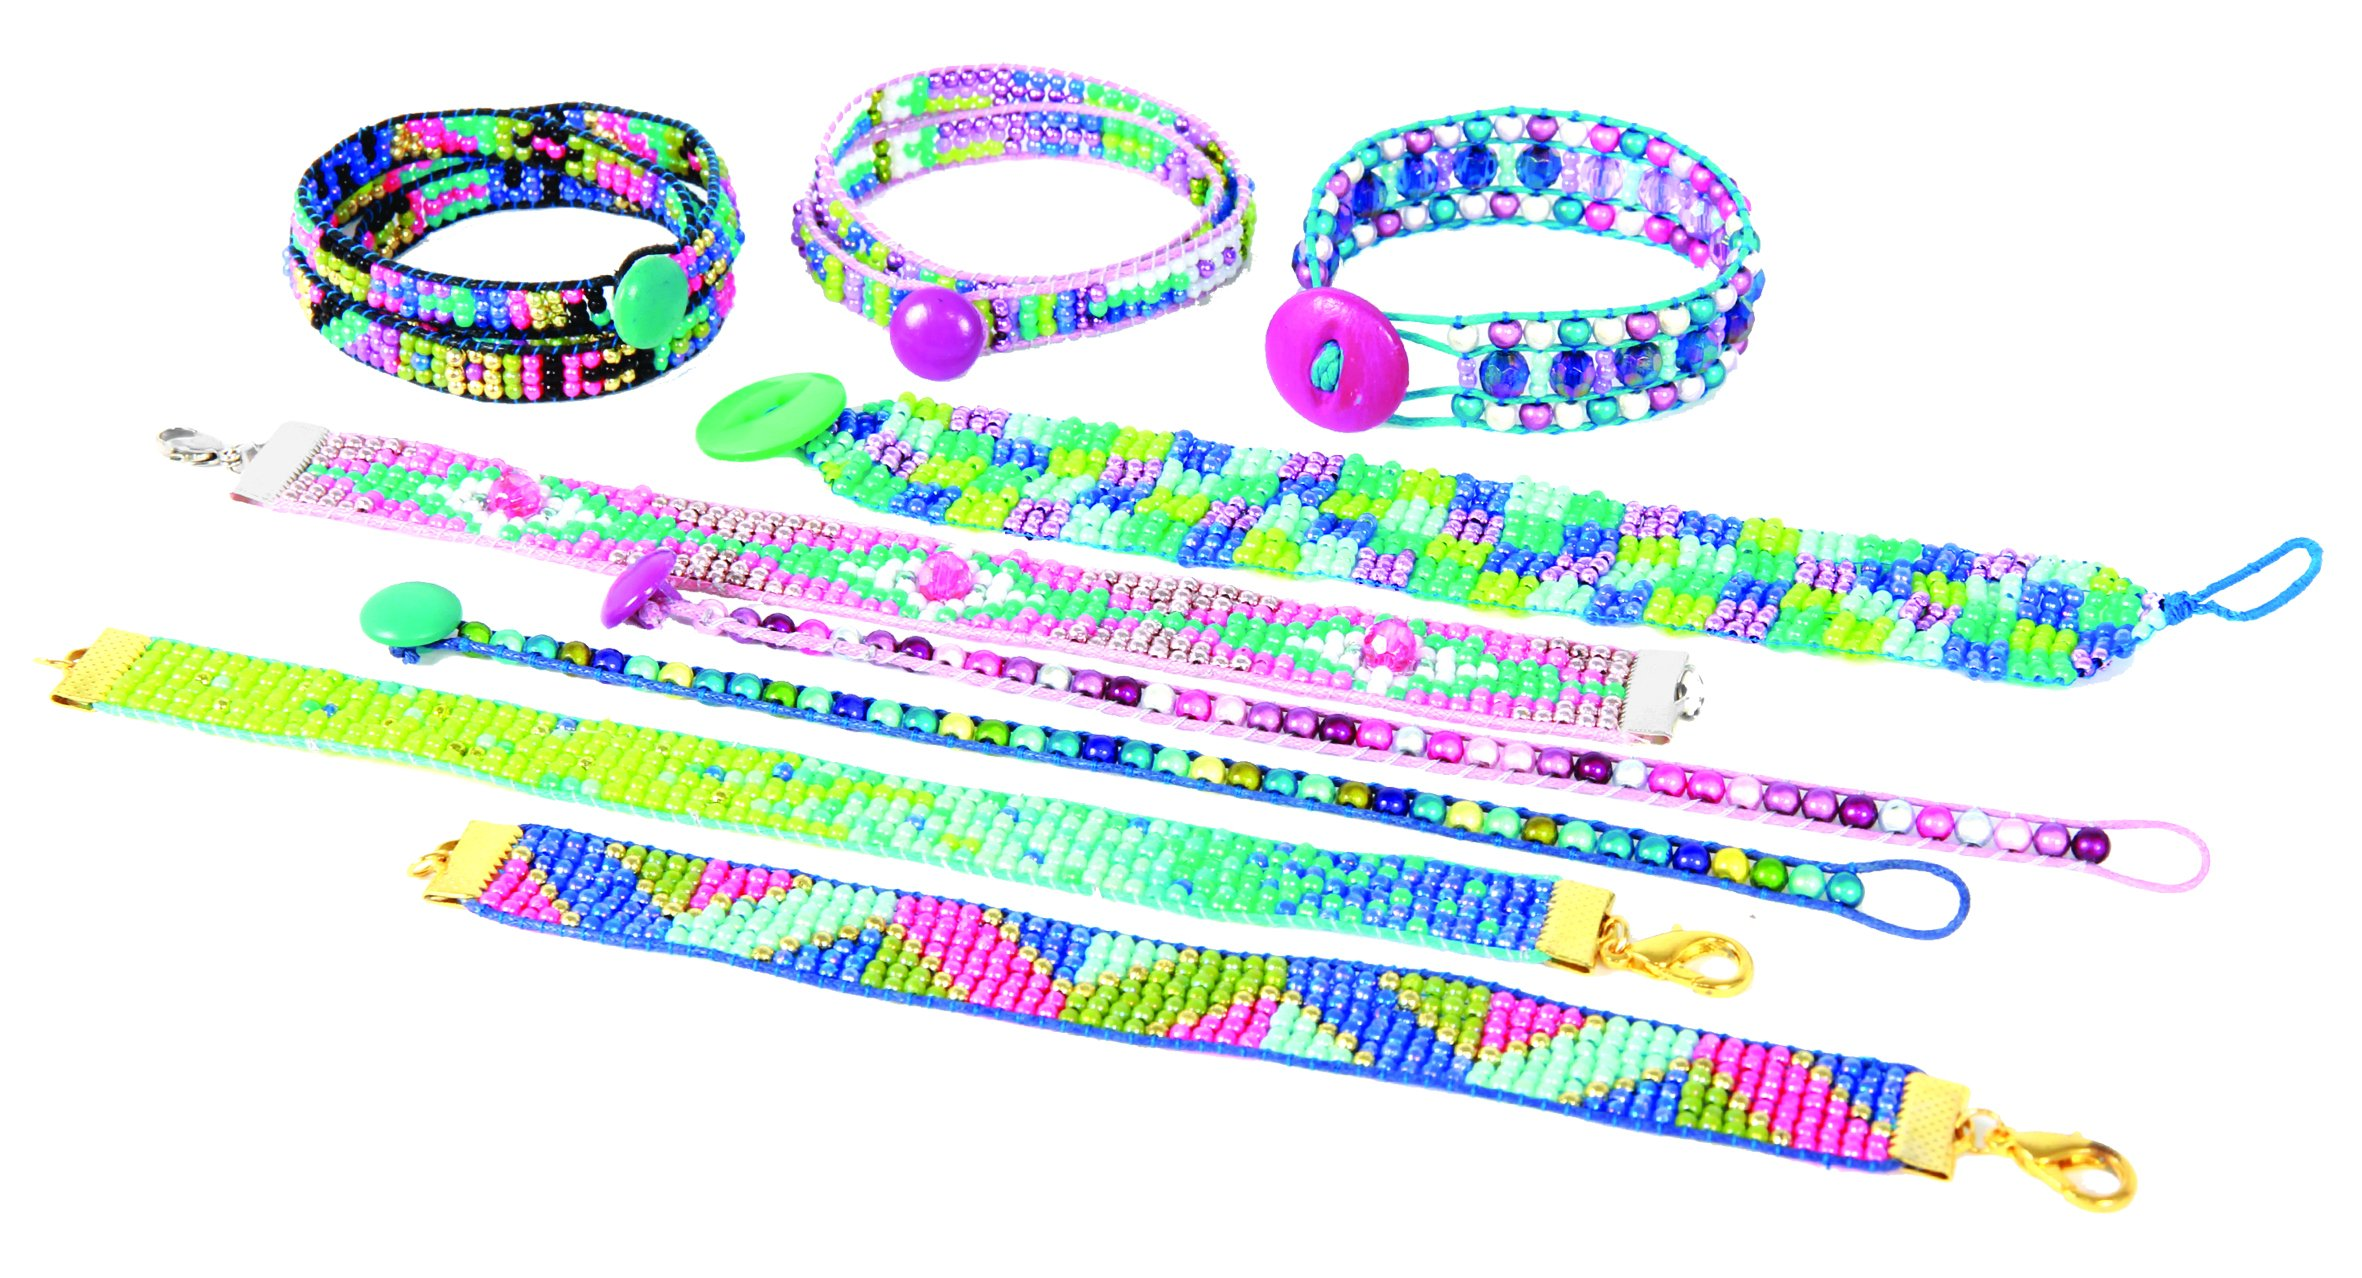 Wooky Entertainment Style Me Up! x -Loom Kit-Adjustable Beads Up to 18'' by Wooky Entertainment (Image #5)